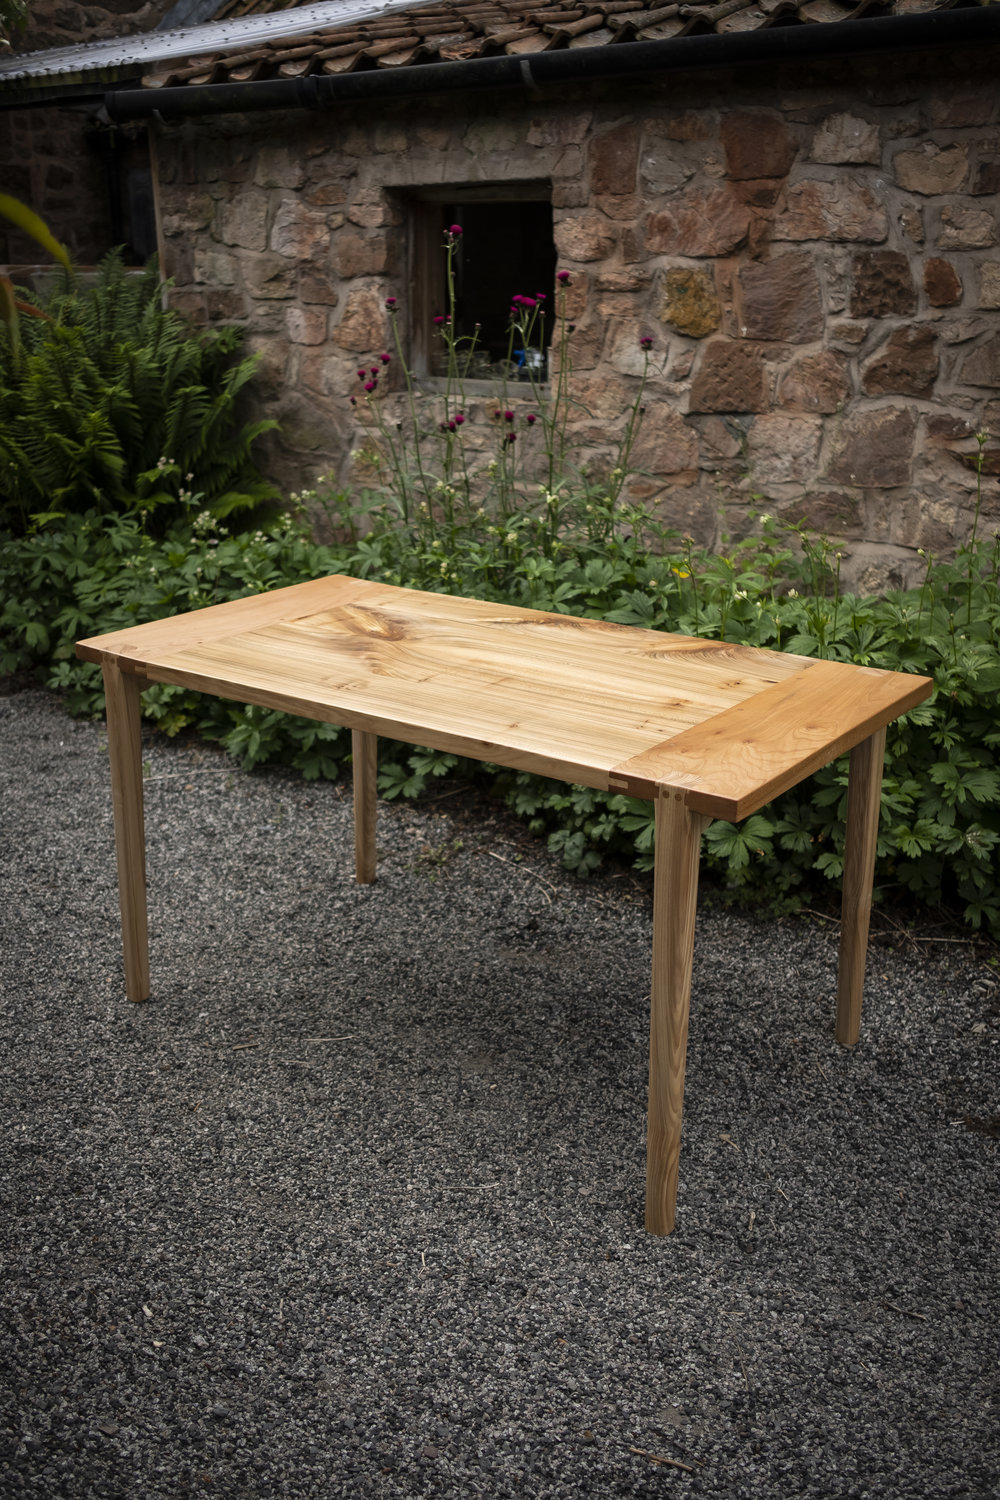 Edesia Table - This Wych Elm and Olive Ash dining table seats 6 around the rectangular figured top. Featuring sturdy and beautiful Maloof (rabbet and tenon) joints and hand shaped Ash stretchers, it is sturdy enough for a feast.